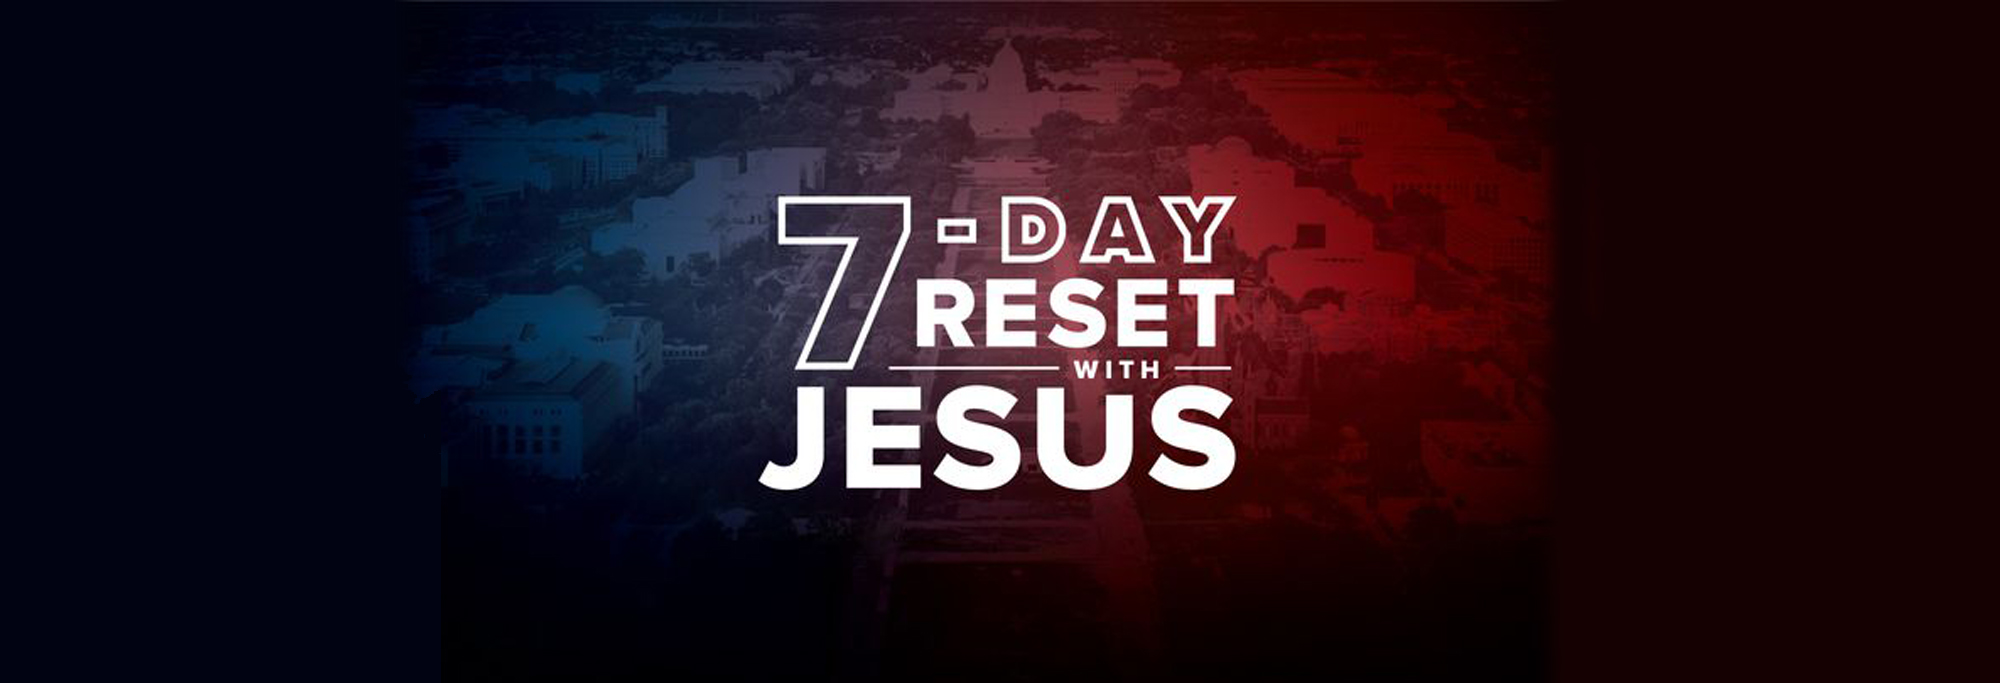 Daily Devotional - 7-Day Reset With Jesus